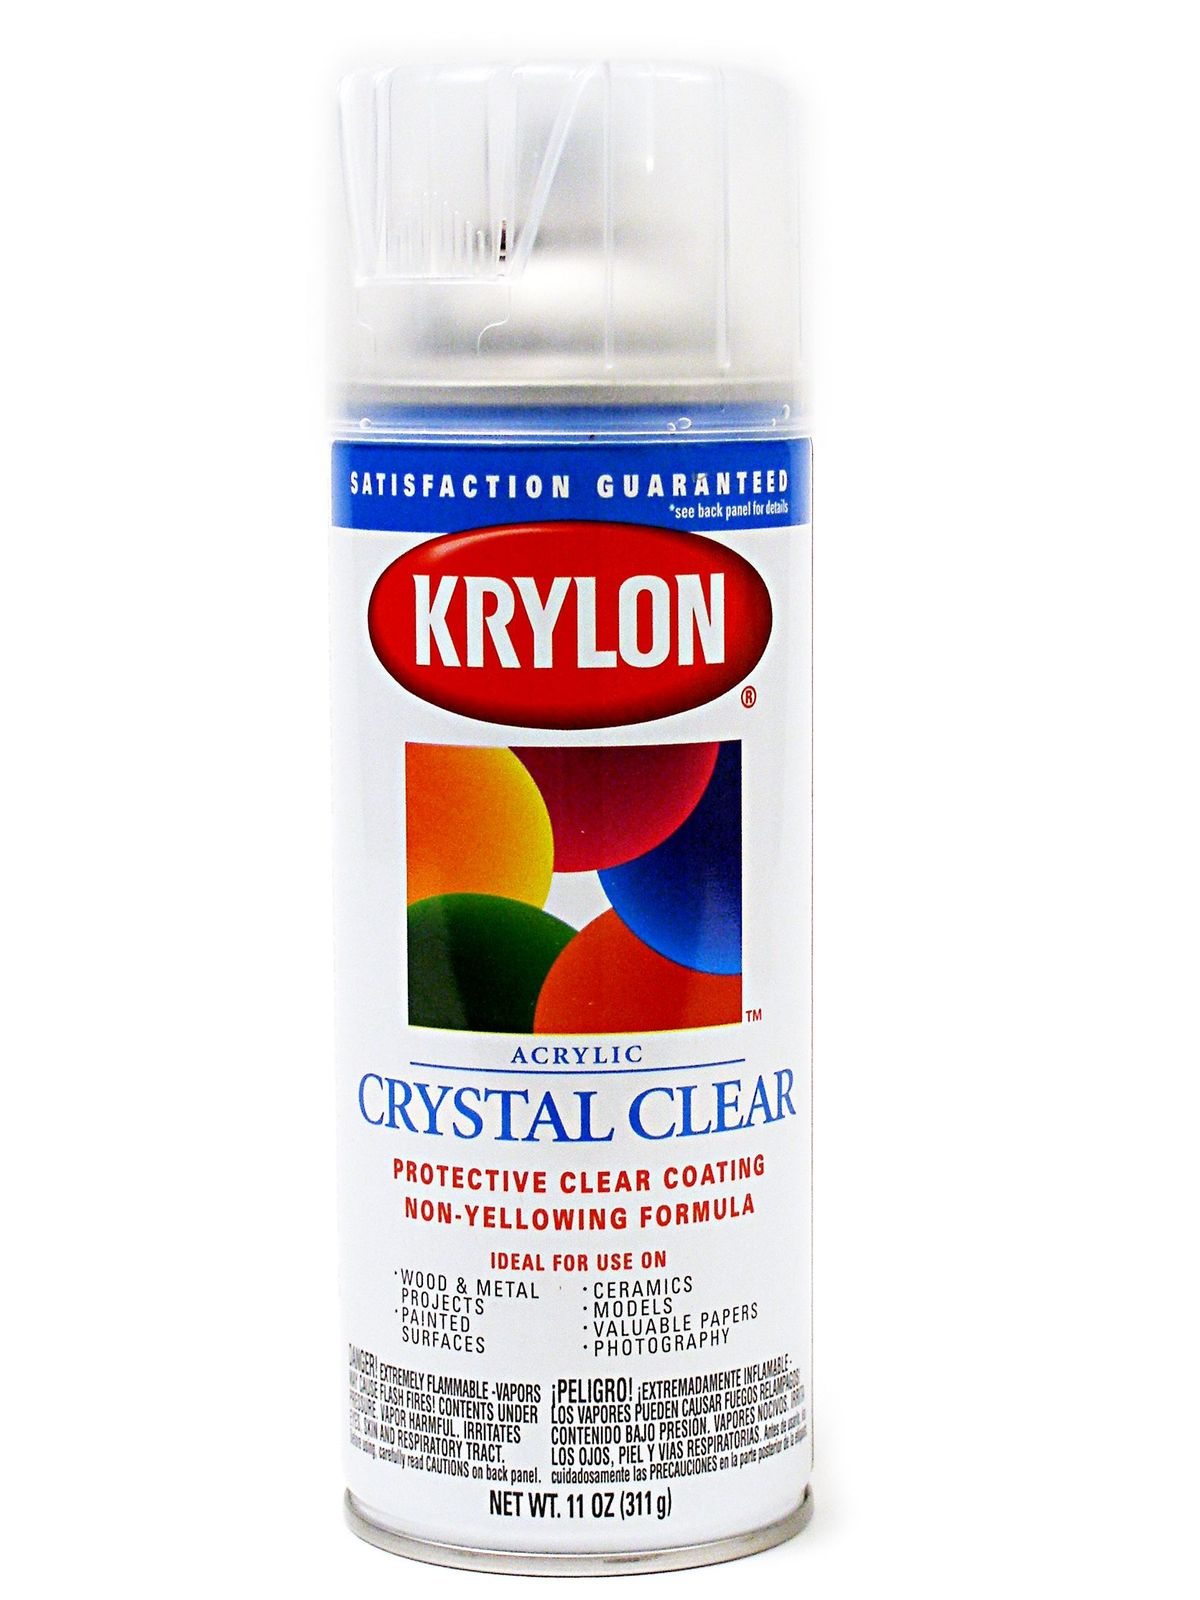 Crystal Clear Universal Coating